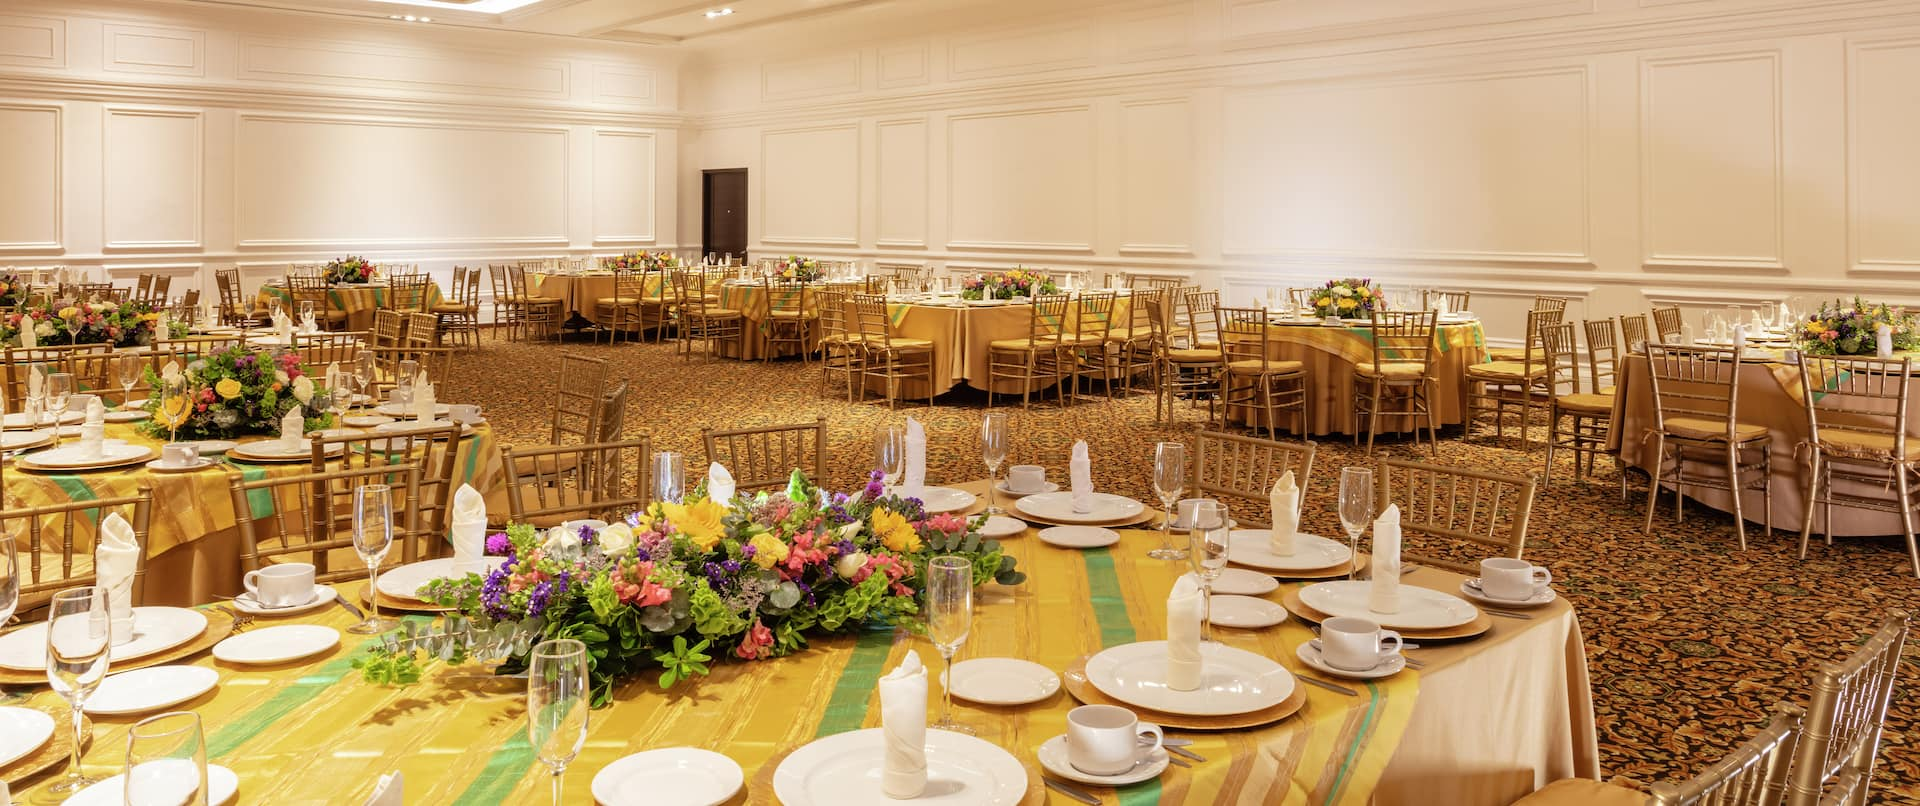 Elegant Banquet and Event Space with Dining Tables and Place Settings